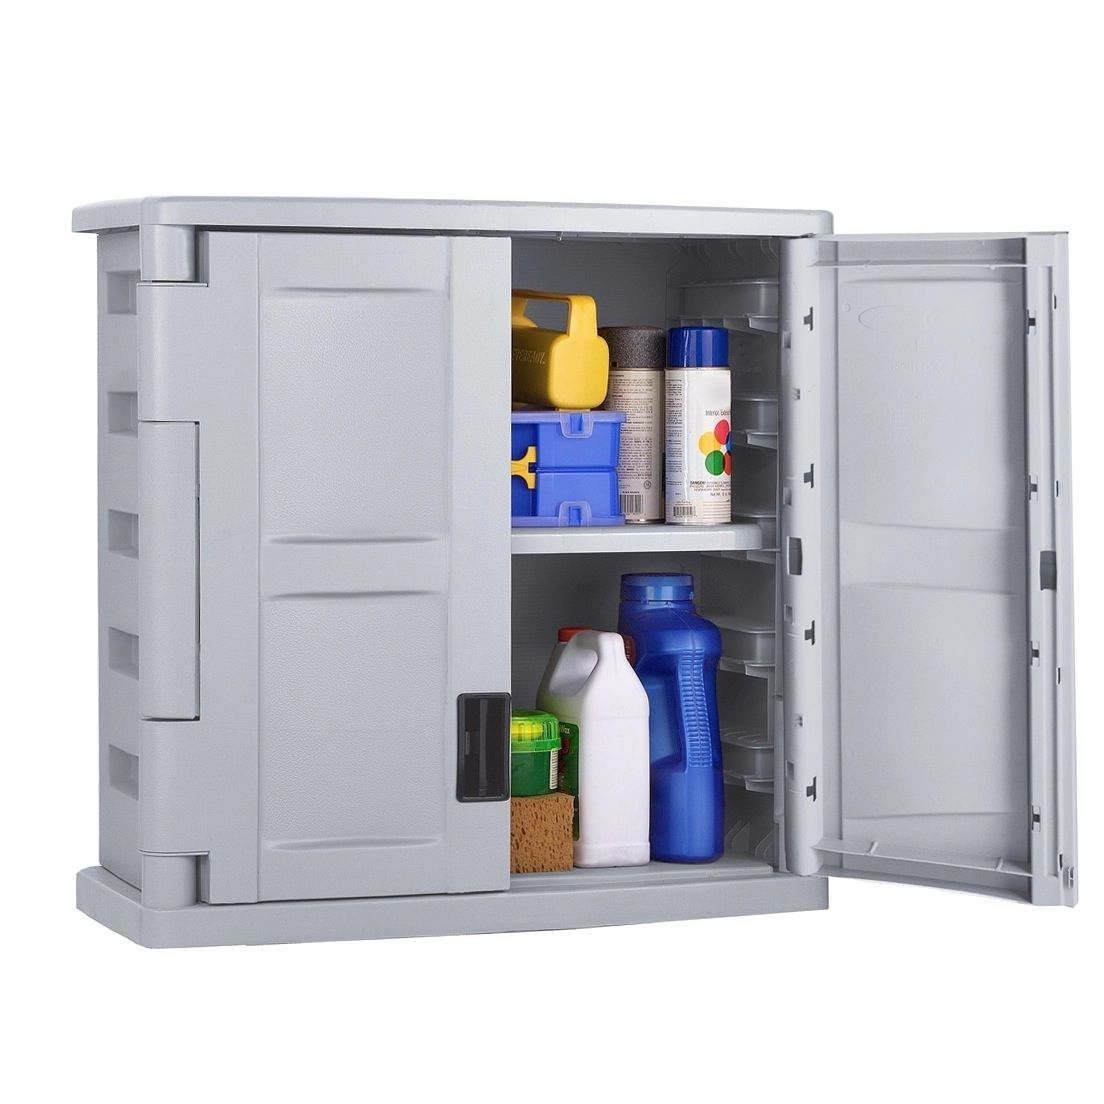 Wonderful Bathroom Alluring Suncast Garage Storage Cabinets Utility With Regard To  Measurements 970 X 970 Suncast Storage Cabinets Sears   Storage Cabinets  Are Fairl